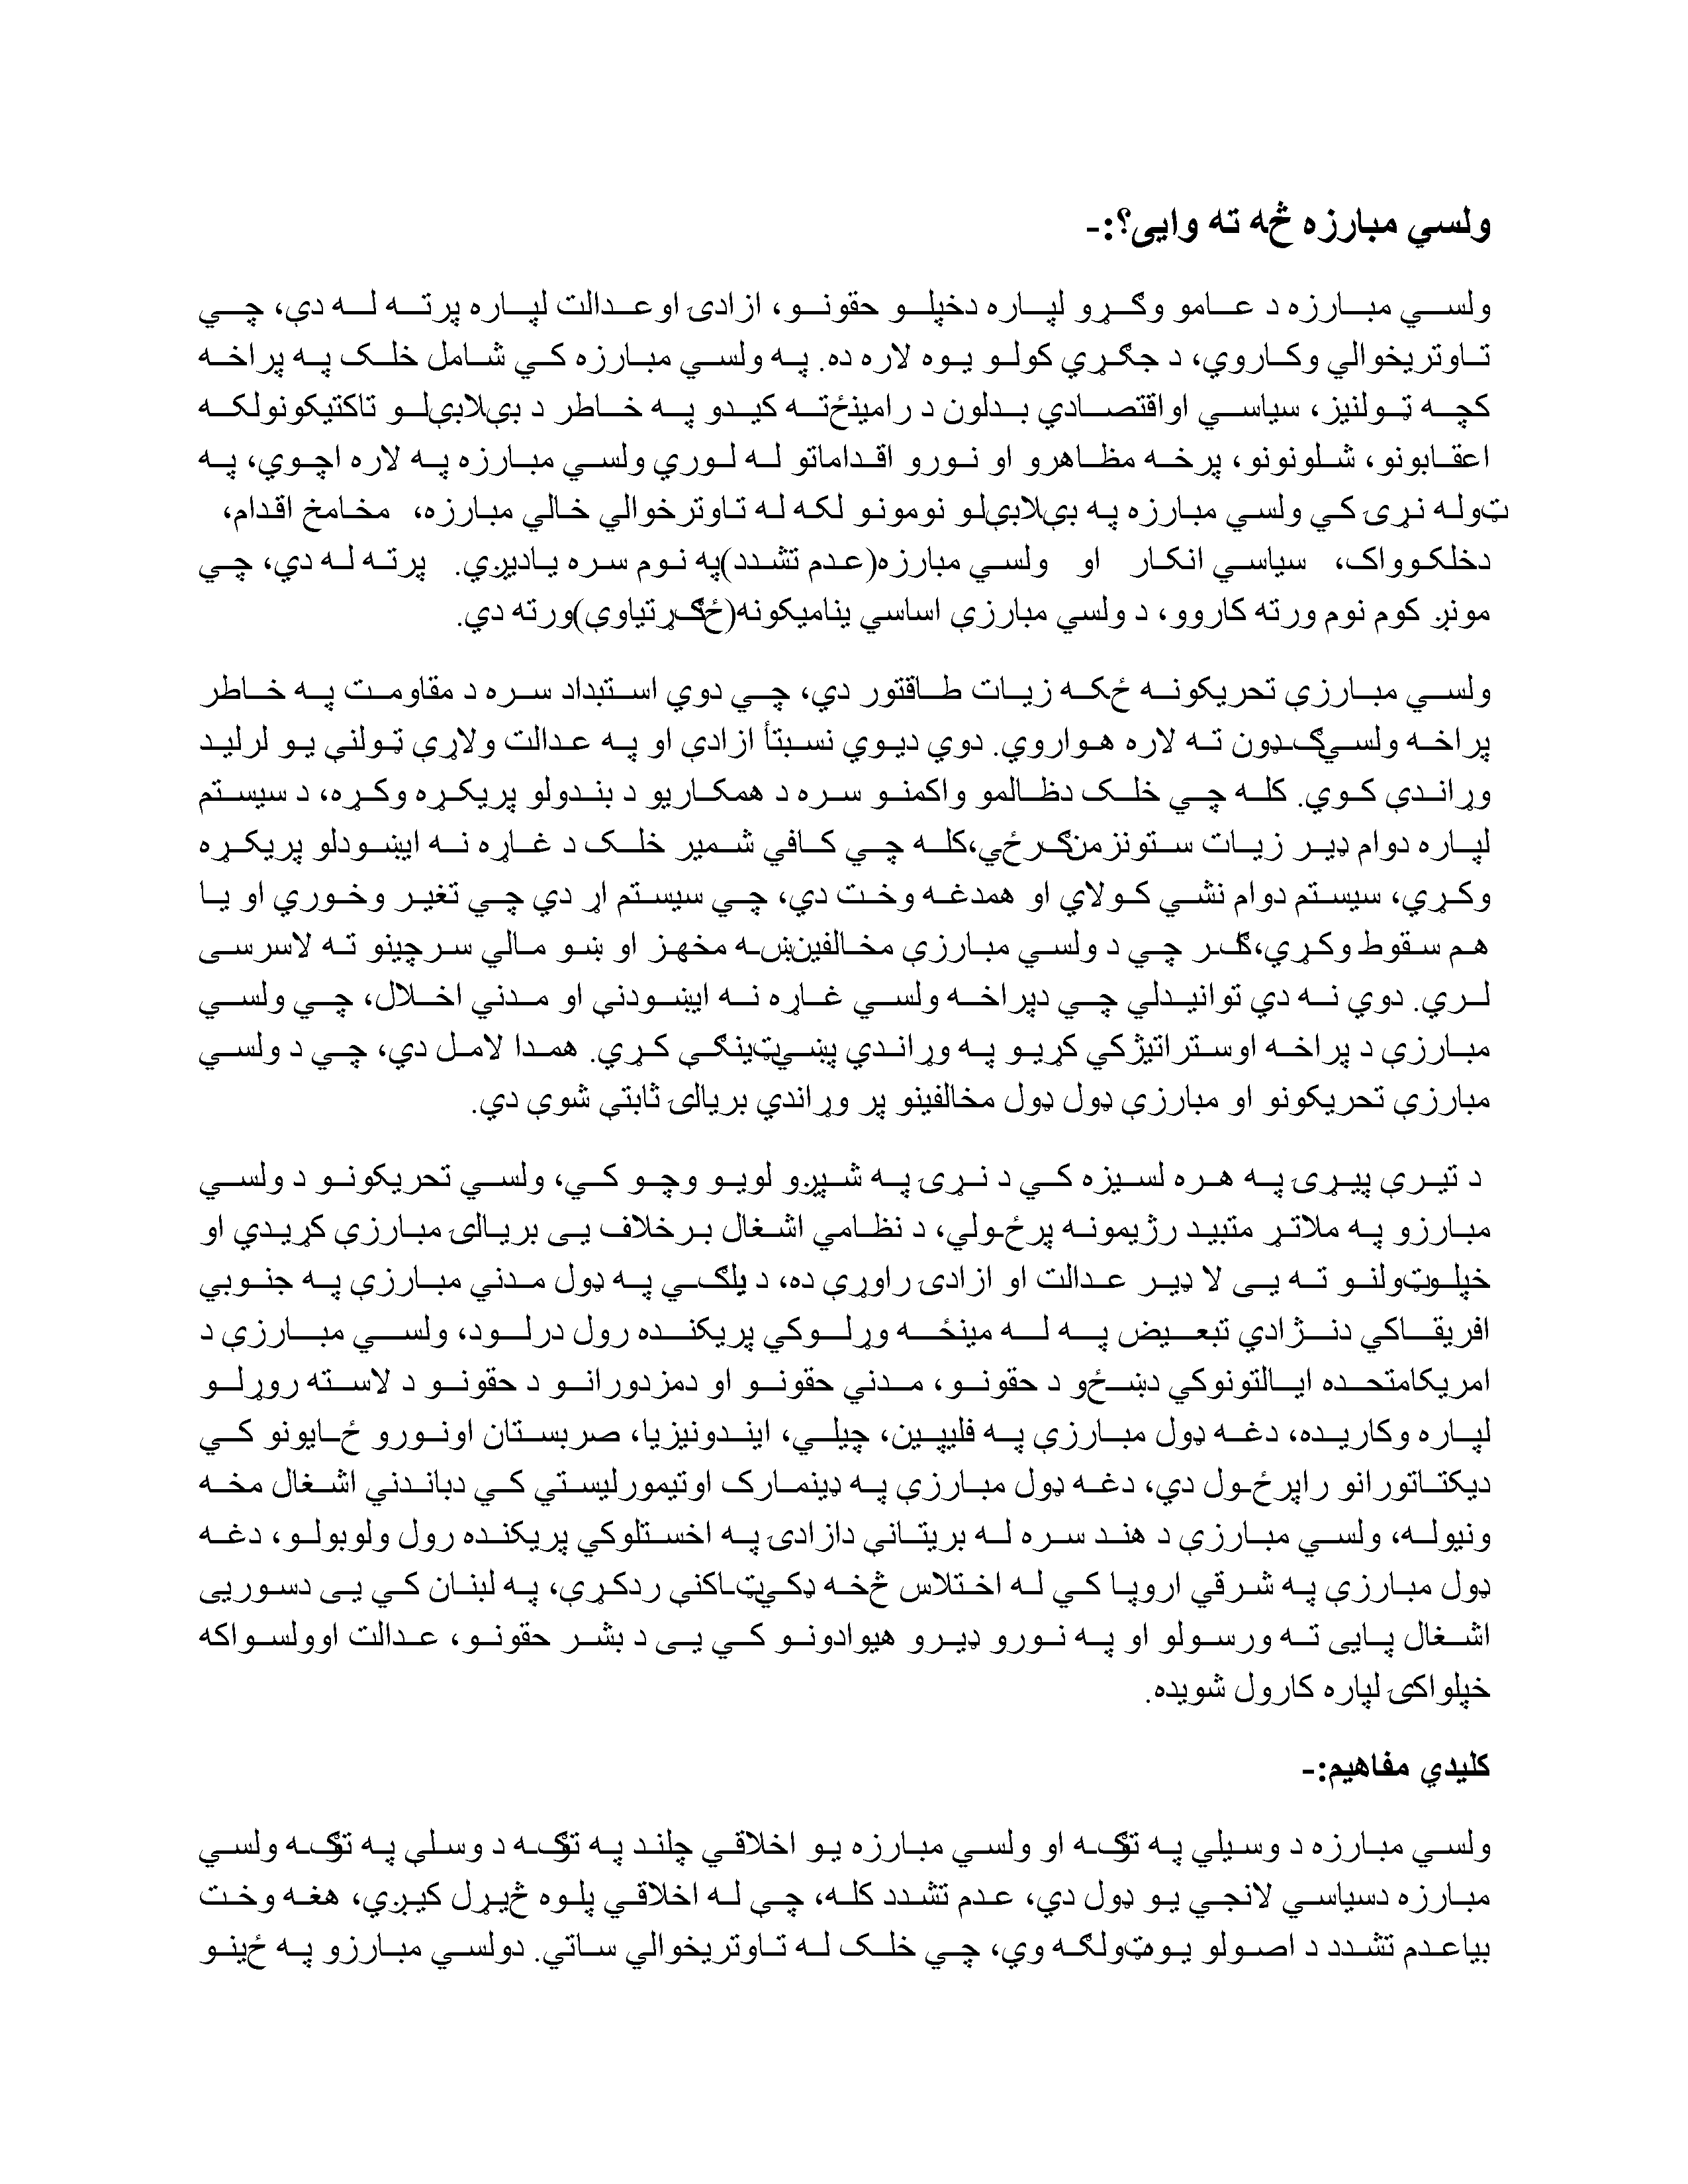 Civil Resistance: A First Look (booklet) (Pashto)